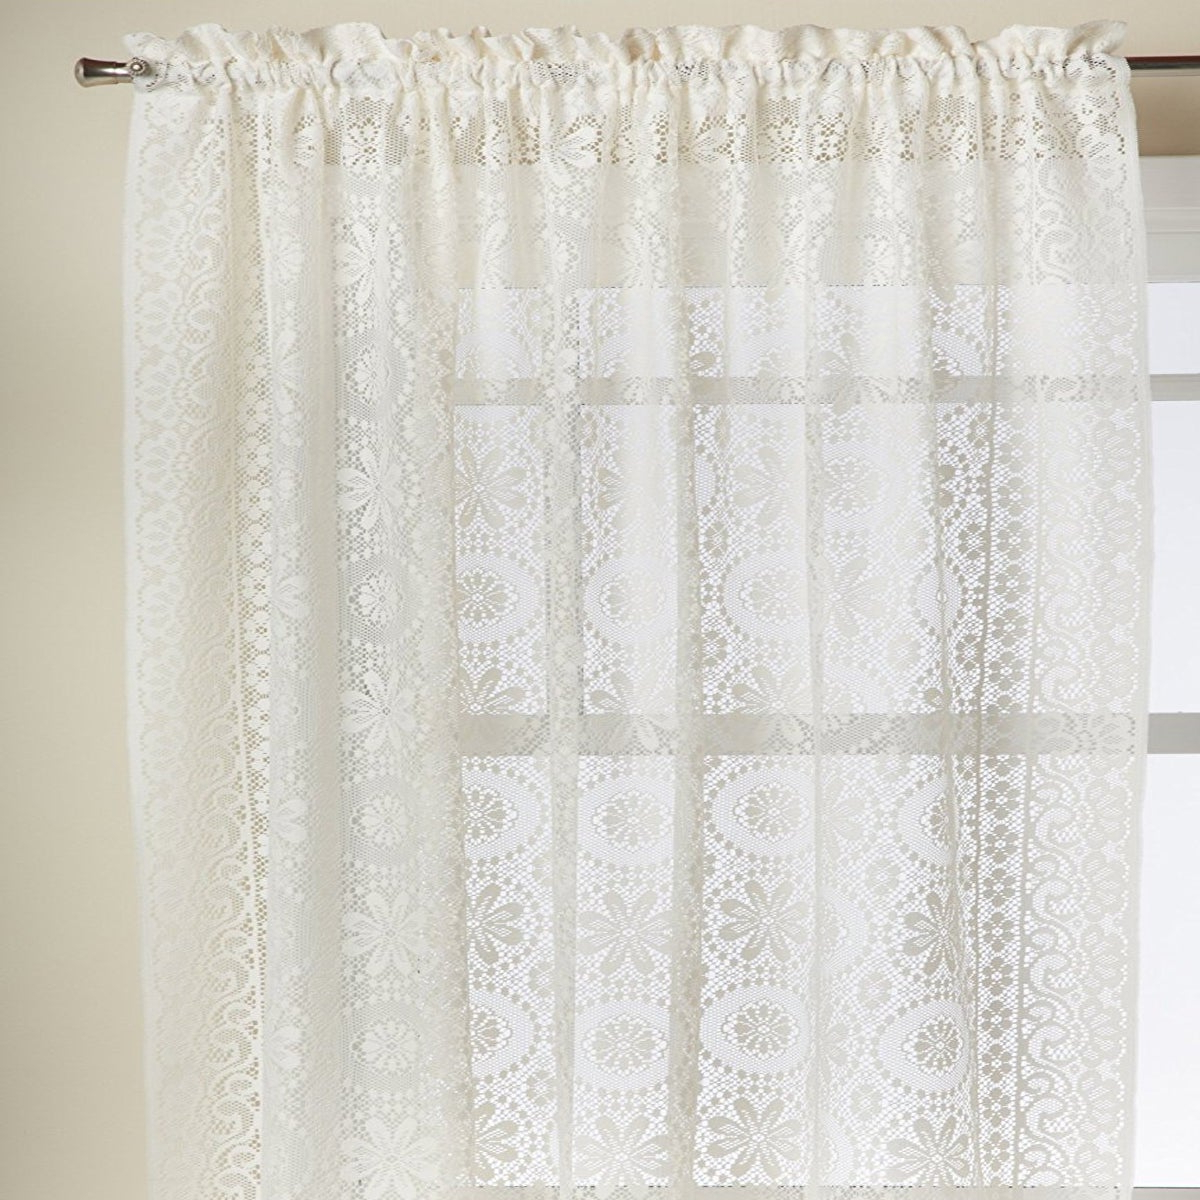 Luxurious Old World Style Lace Window Curtain Panels Regarding Most Recent Luxurious Old World Style Lace Window Curtain Panel (View 8 of 20)